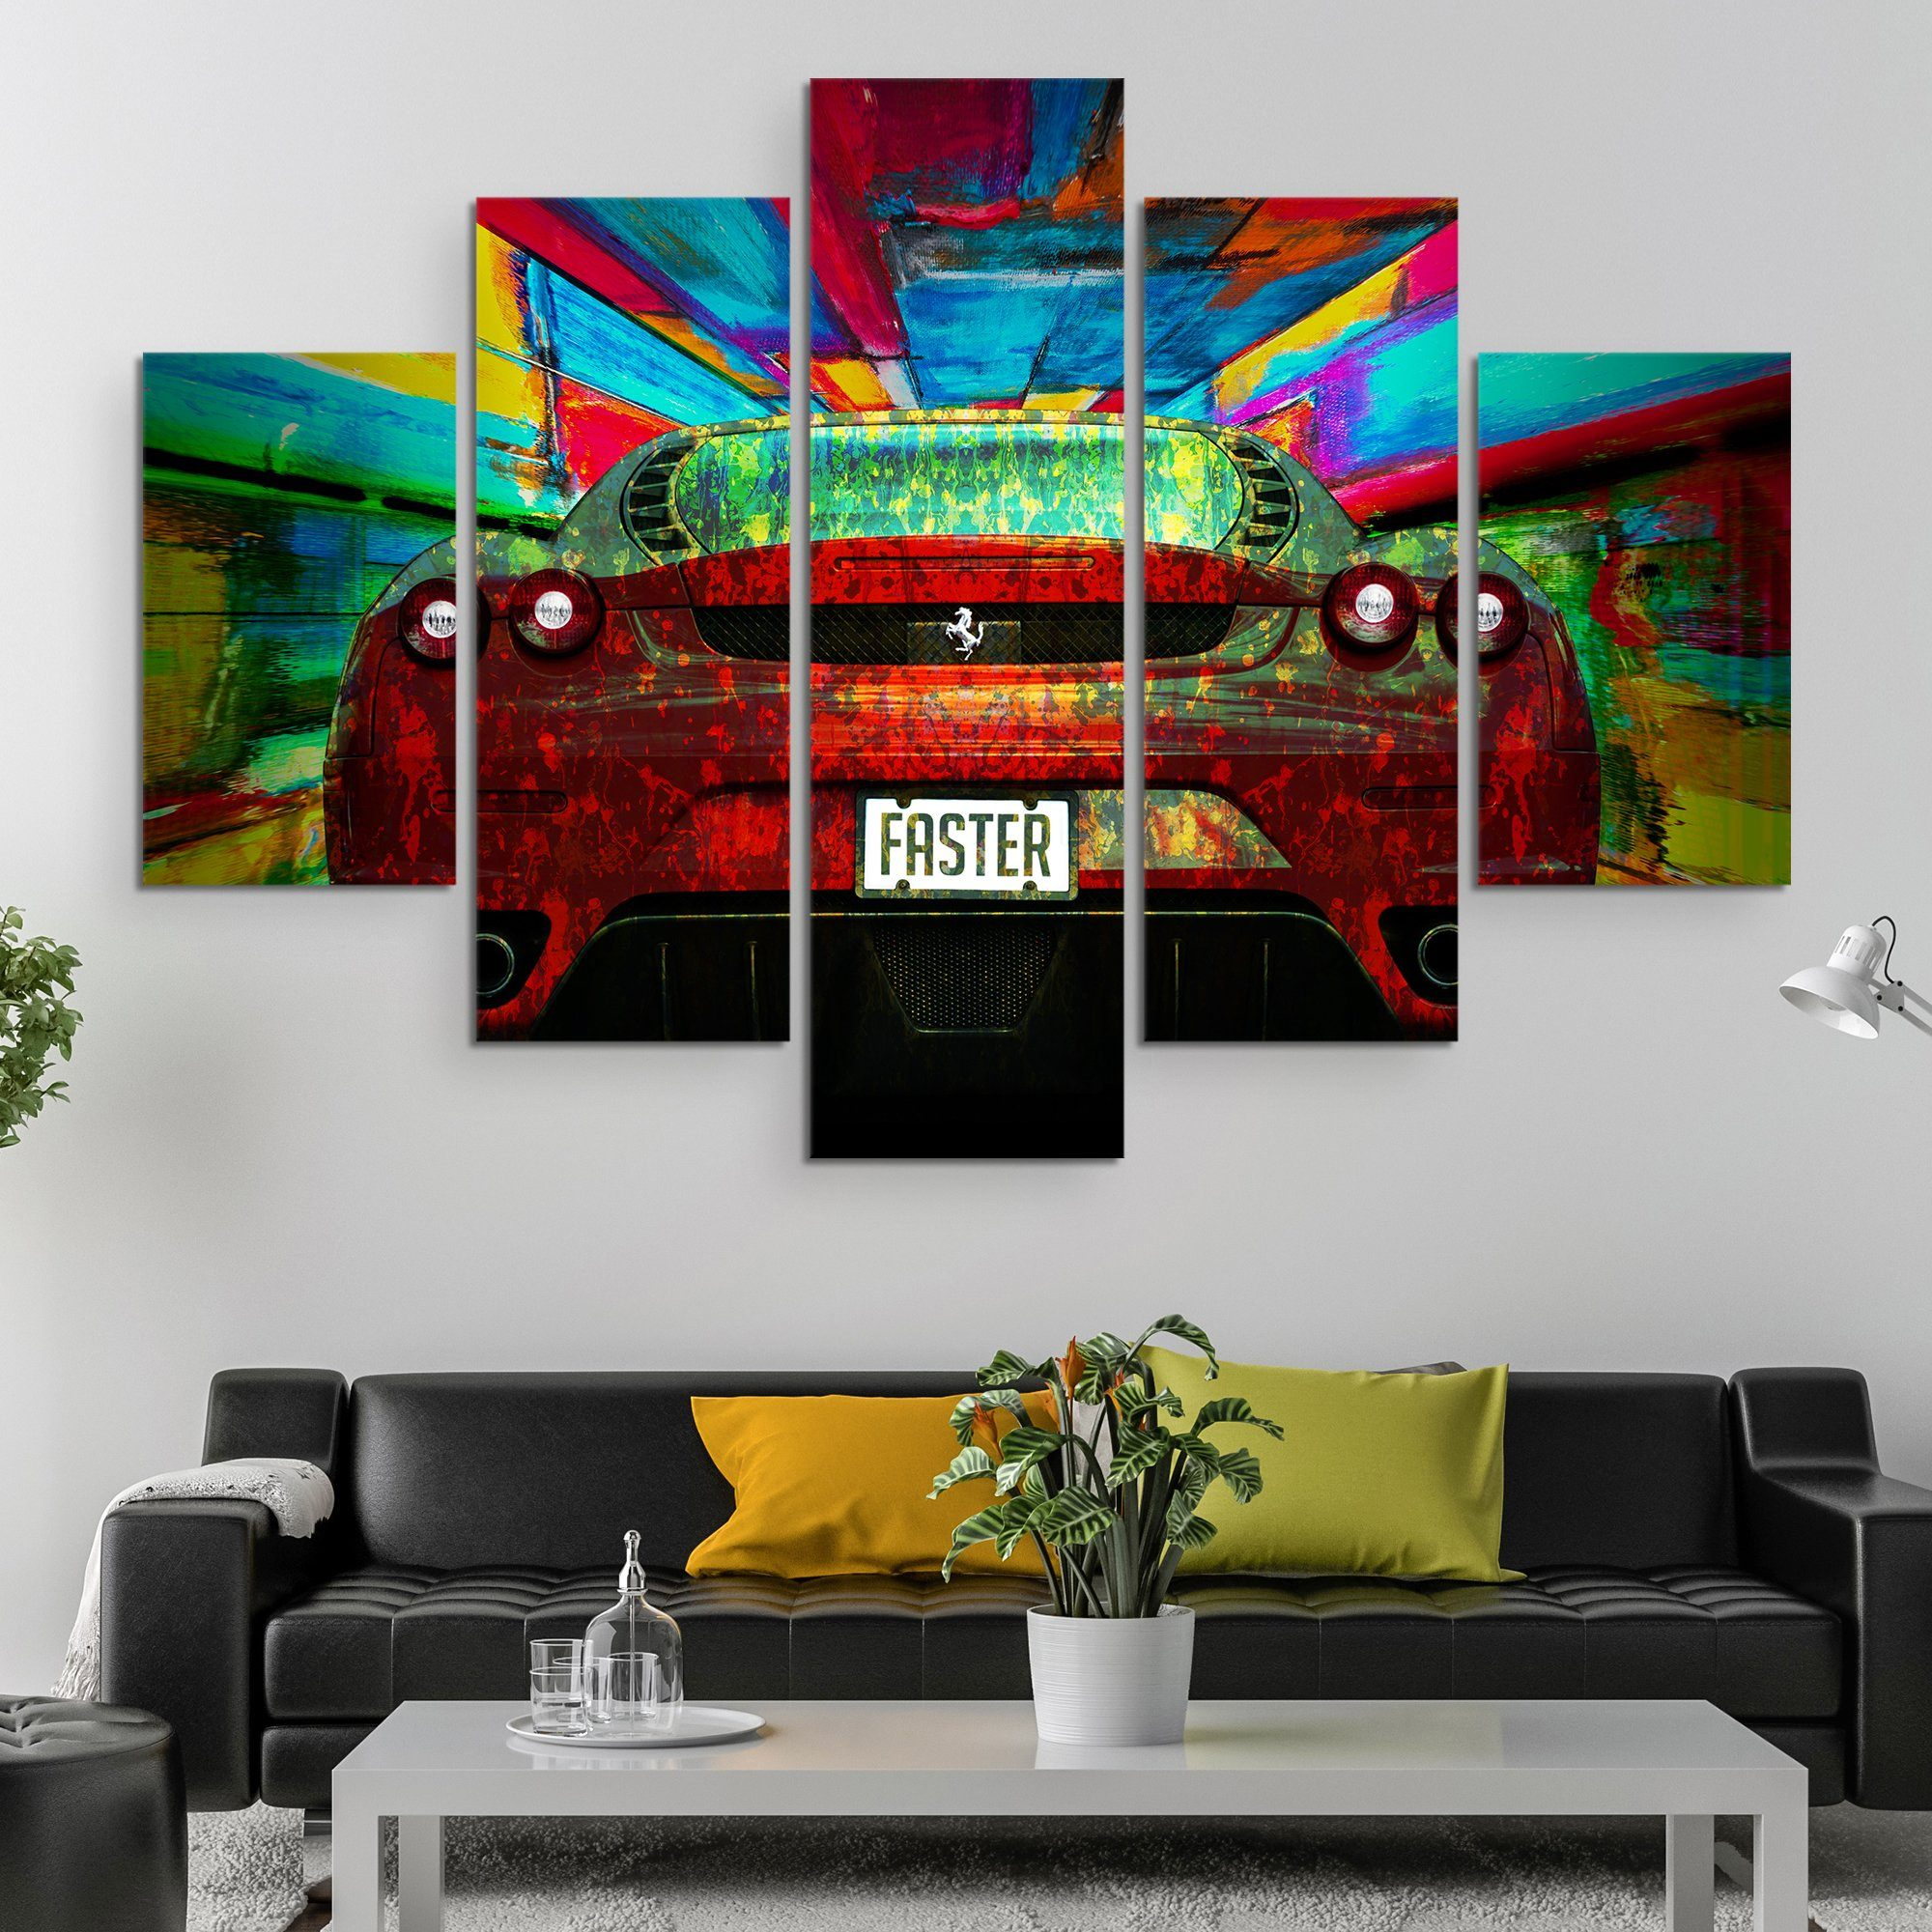 5 piece Ferrari - Faster wall art